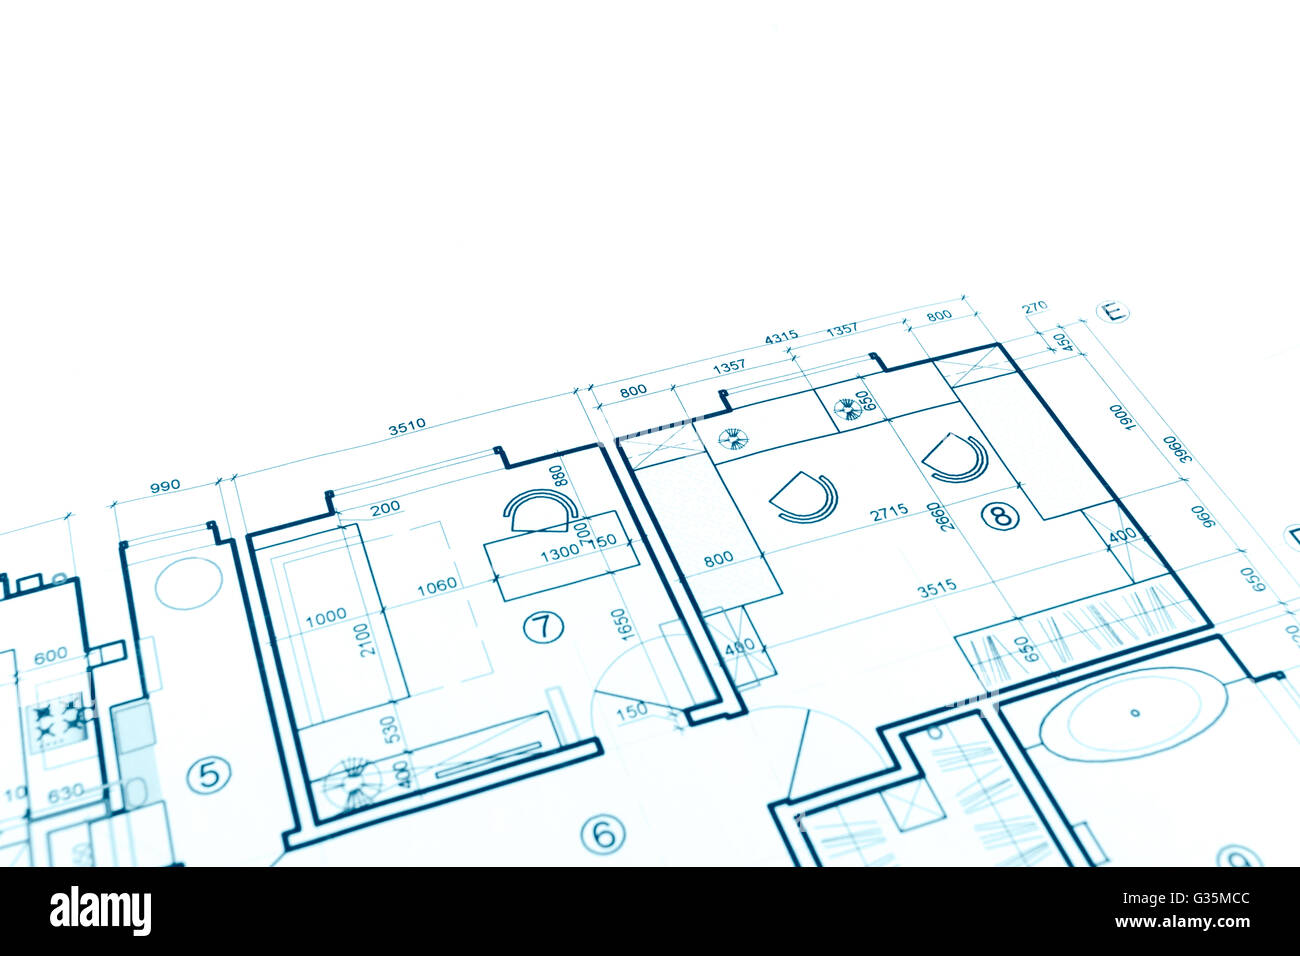 Floor plan blueprint blueprints background architecture for Architecture design blueprint